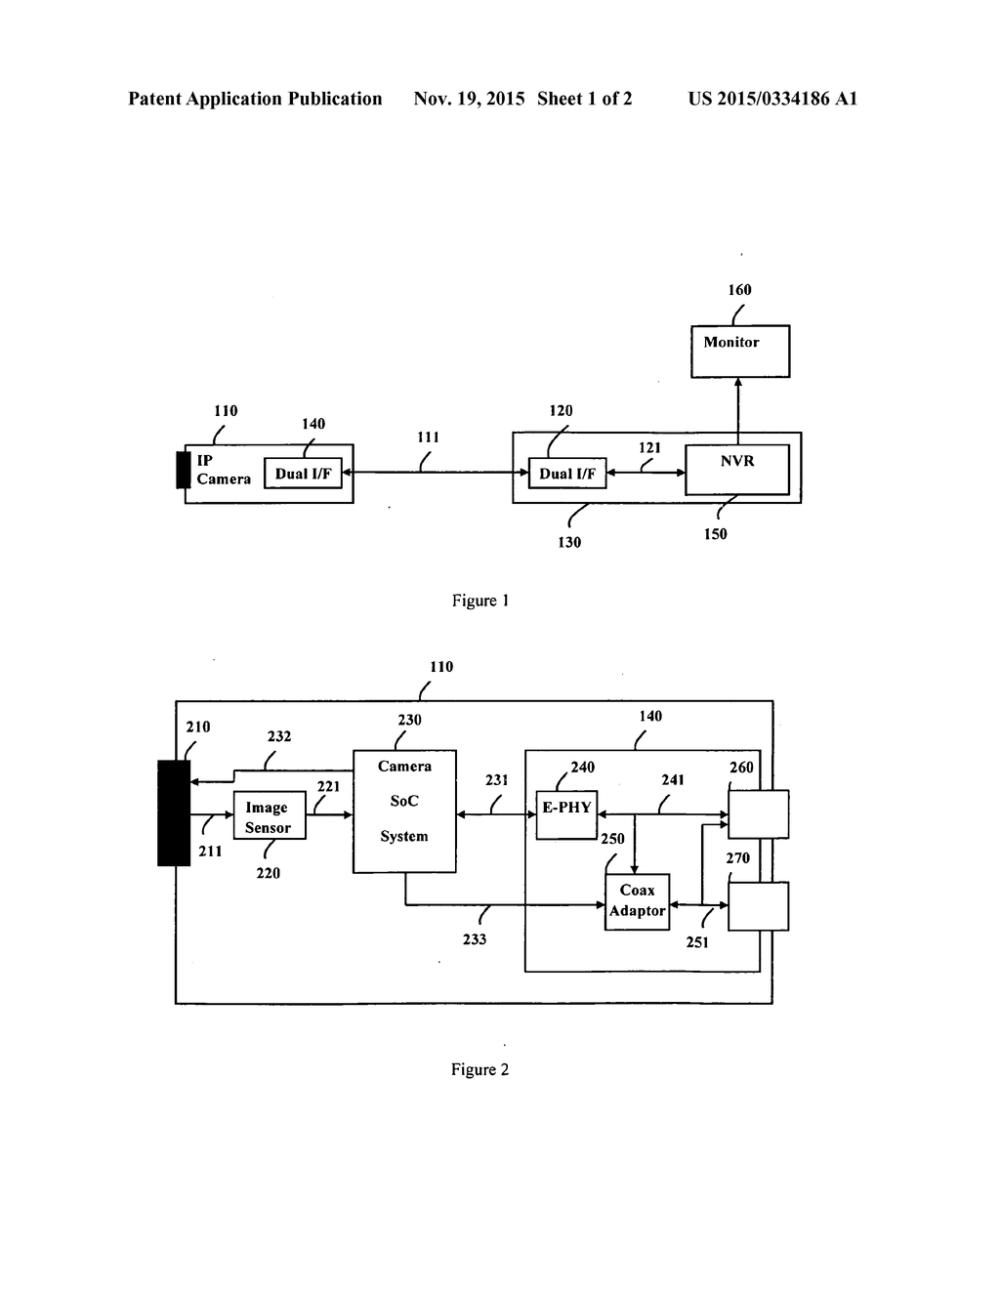 medium resolution of coax adaptor for ethernet physical layer transceiver diagram schematic and image 02